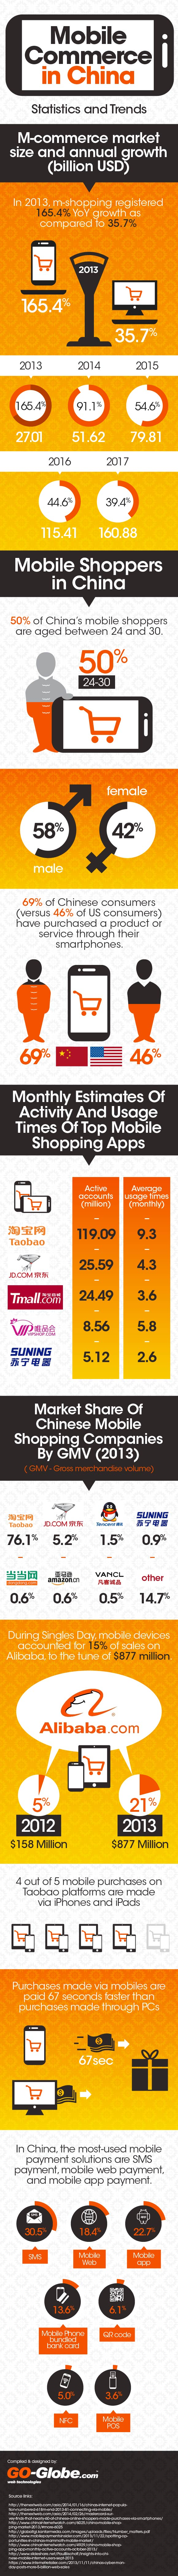 China's mobile commerce spending to surpass $50 billion in 2014...